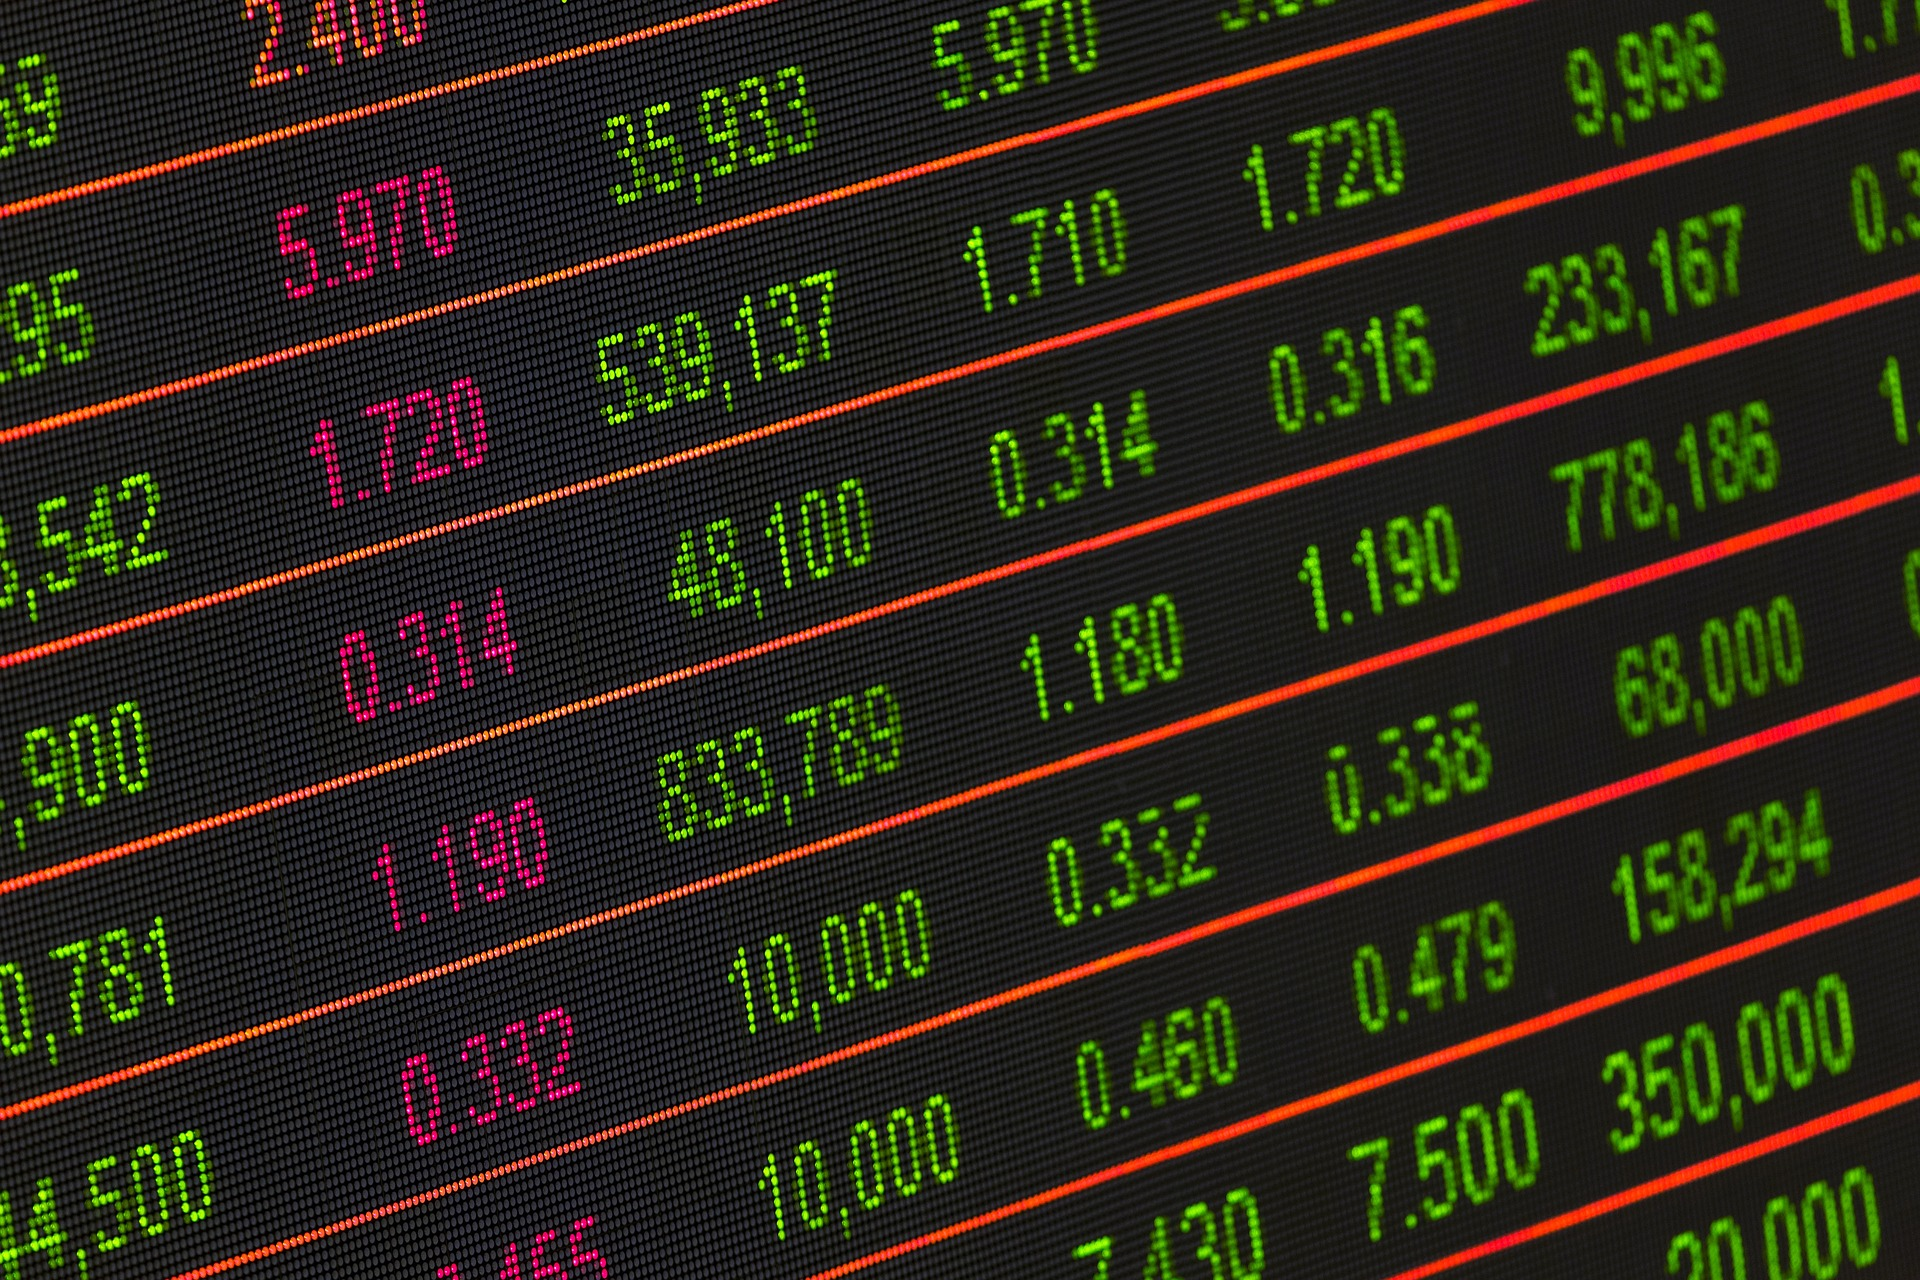 Day Trading Rules: Here Are 6 Powerful Tips for Beginners